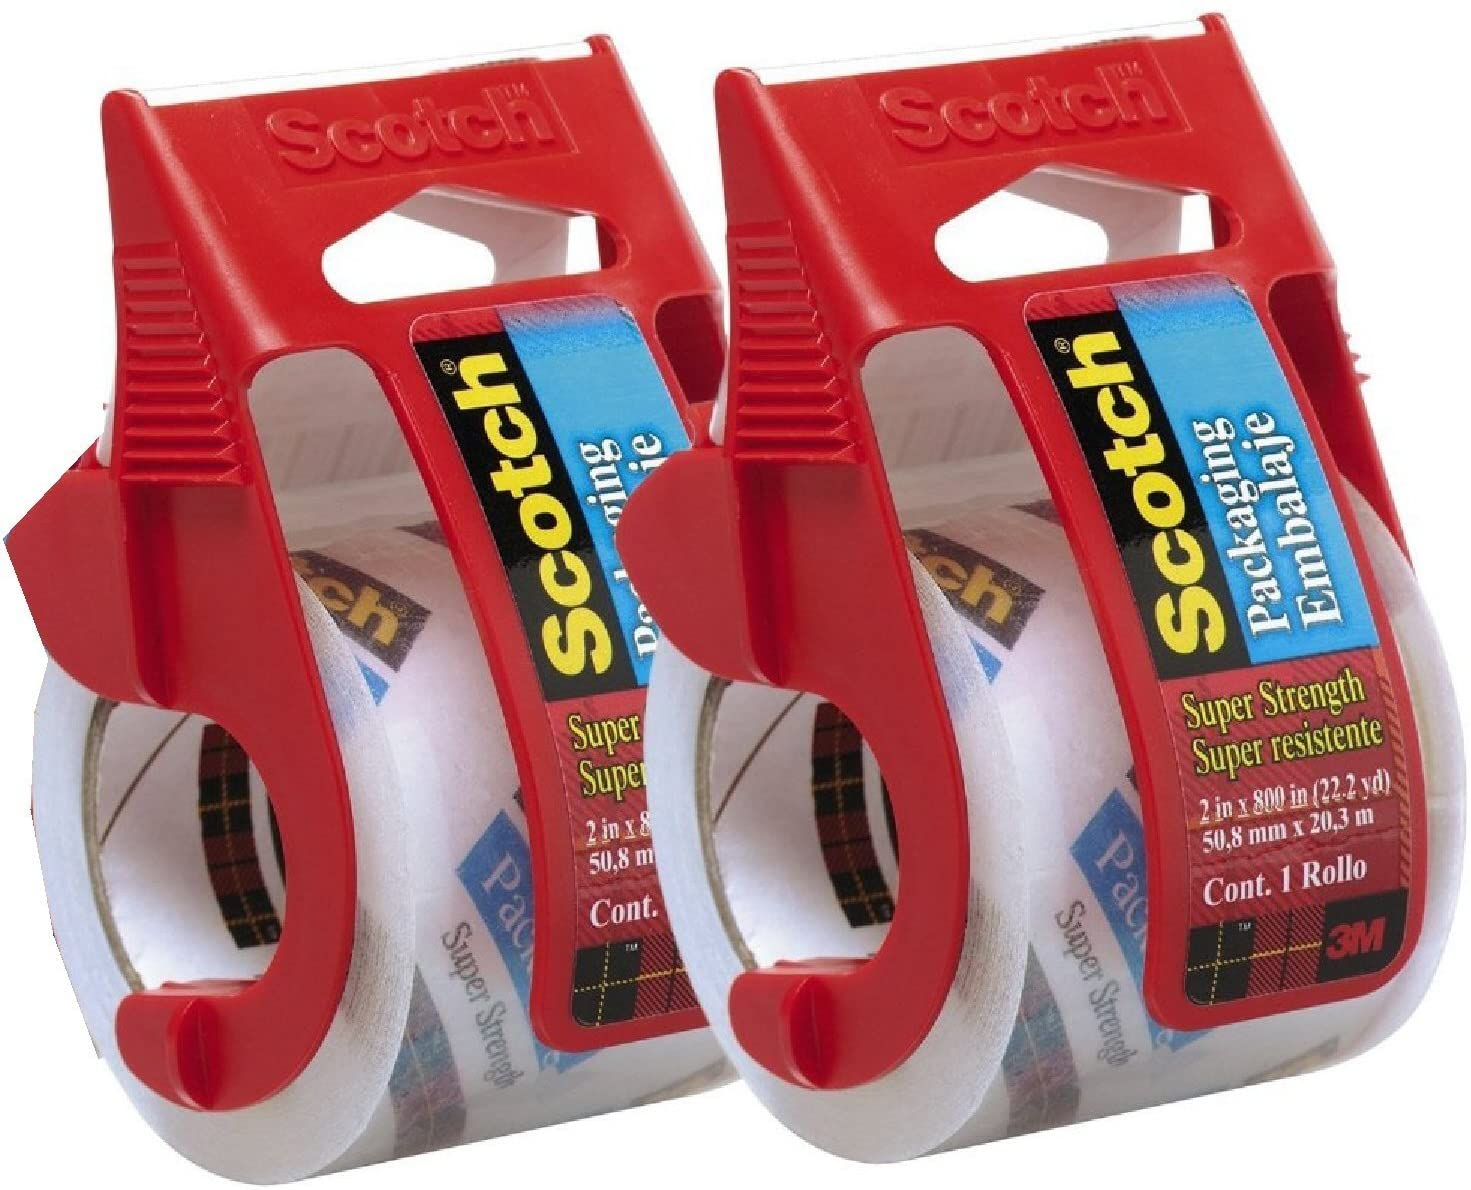 Scotch Heavy Duty Packaging Tape, 2 Inches x 800 Inches, Clear - 2 Count